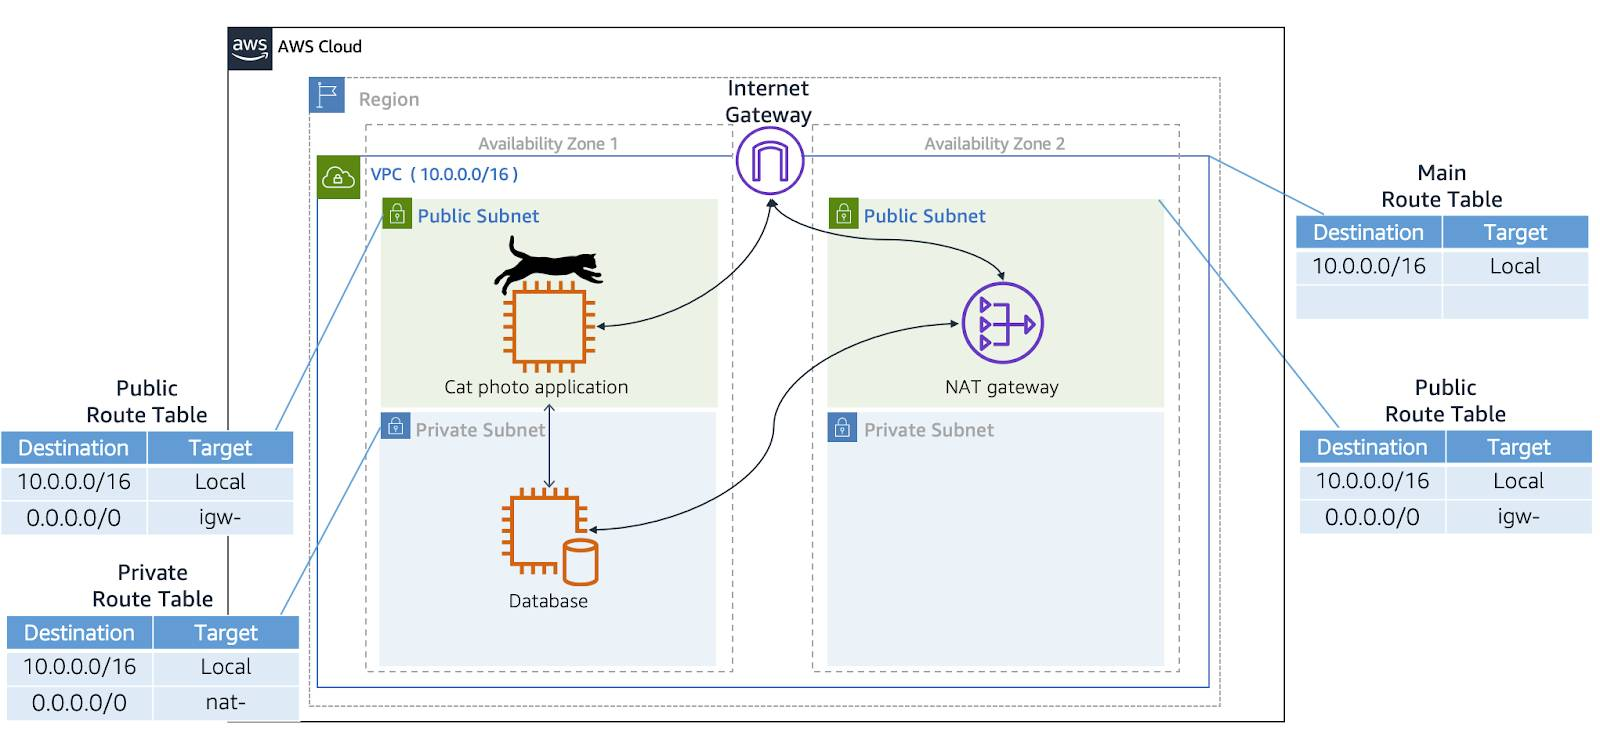 VPC with two public and two private subnets. A public route table is associated with the public subnets and a private route table is associated with the private subnets. There is also an internet gateway and a NAT gateway.